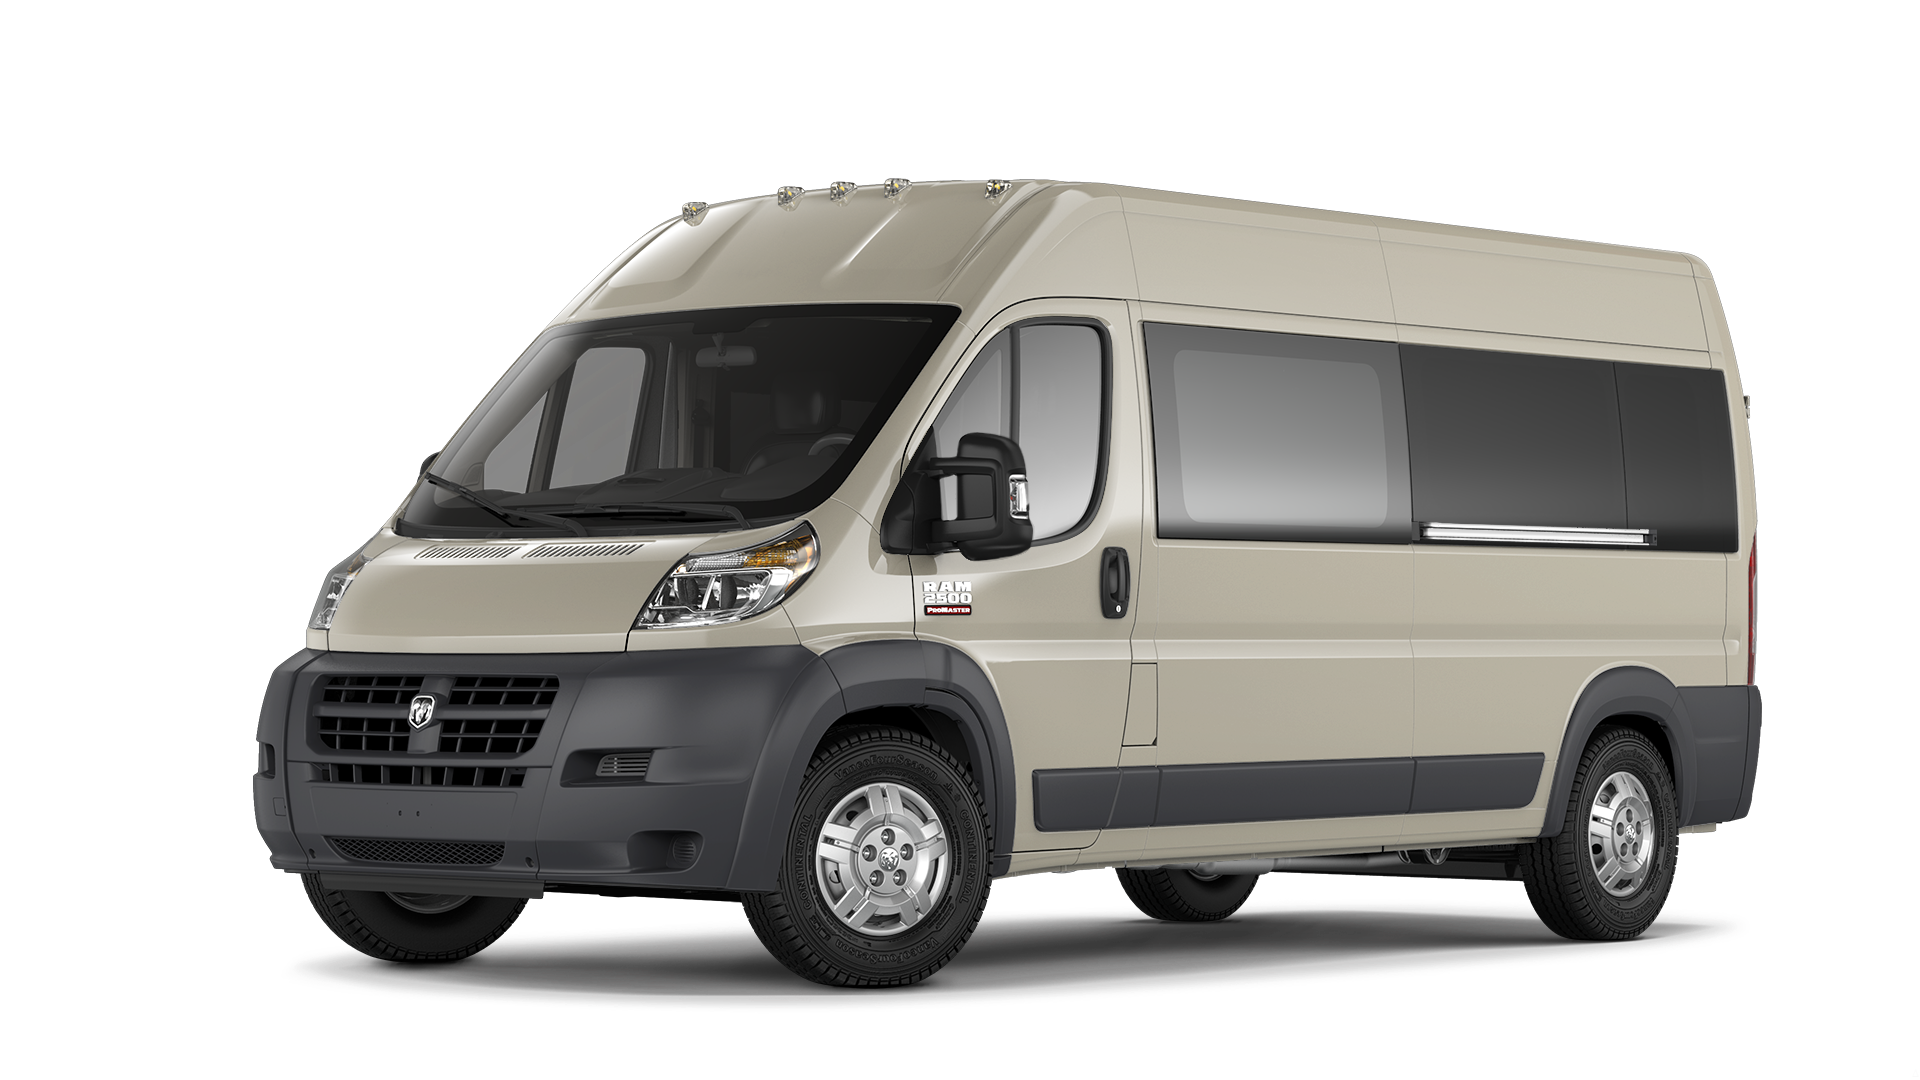 2015 ram promaster window van information and photos zombiedrive. Black Bedroom Furniture Sets. Home Design Ideas